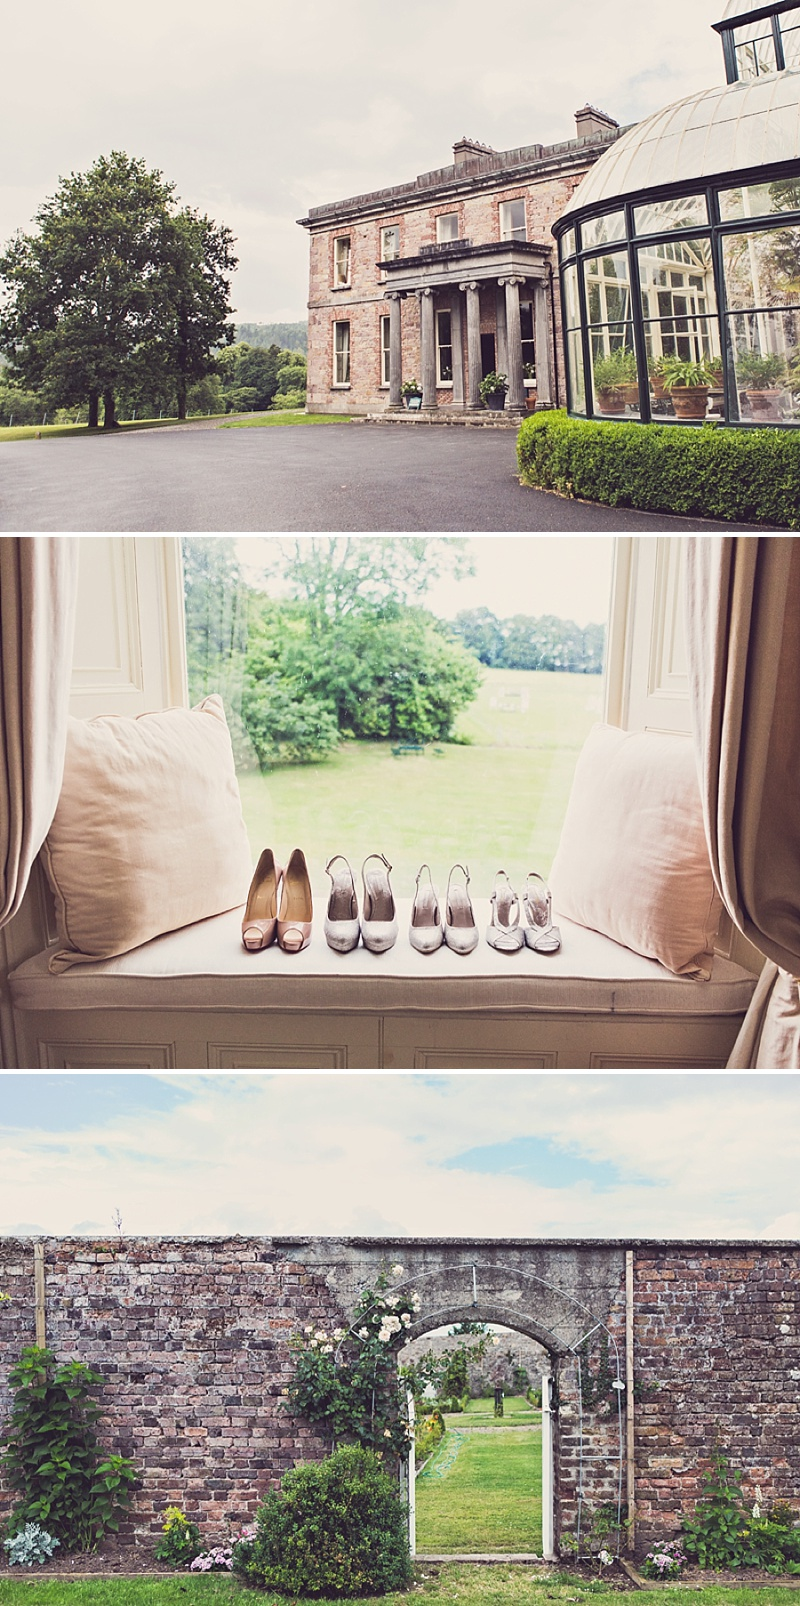 A Purple And Ivory Contemporary Wedding At Kilshane House In Tipperary Ireland With Bride In Aspen By Jenny Packham And Nude Christian Louboutin Peeptoes Images By Claire Penn 0001 Wiggle Those Toes.